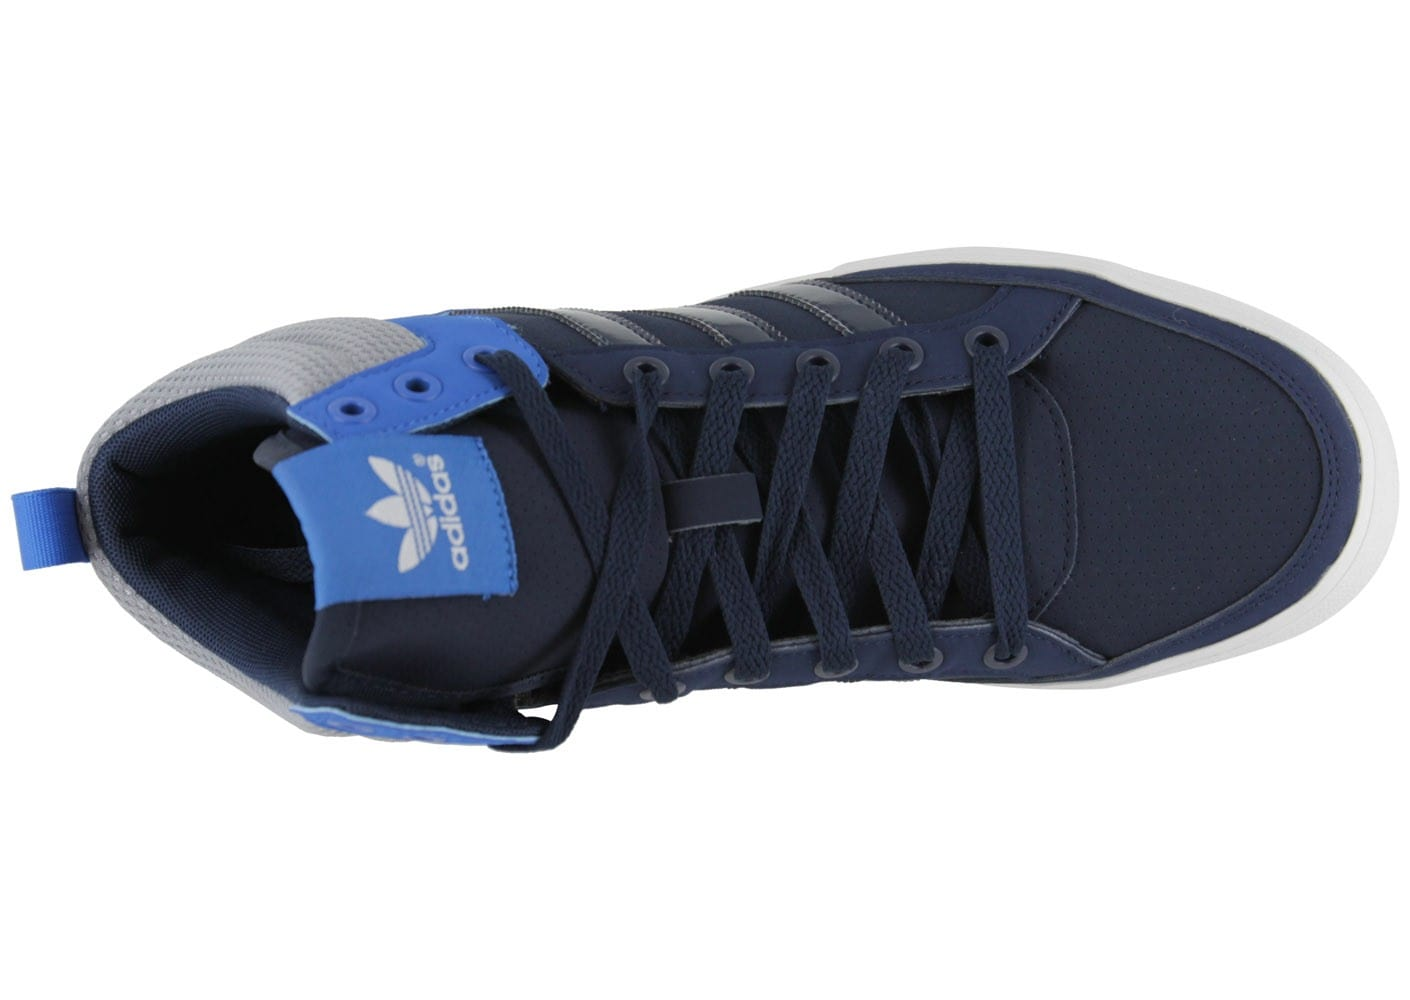 wholesale dealer a069e 6dd72 Adidas Baskets Bleu Homme Court Chausport Top Marine Chaussures PrPwOxBqUp